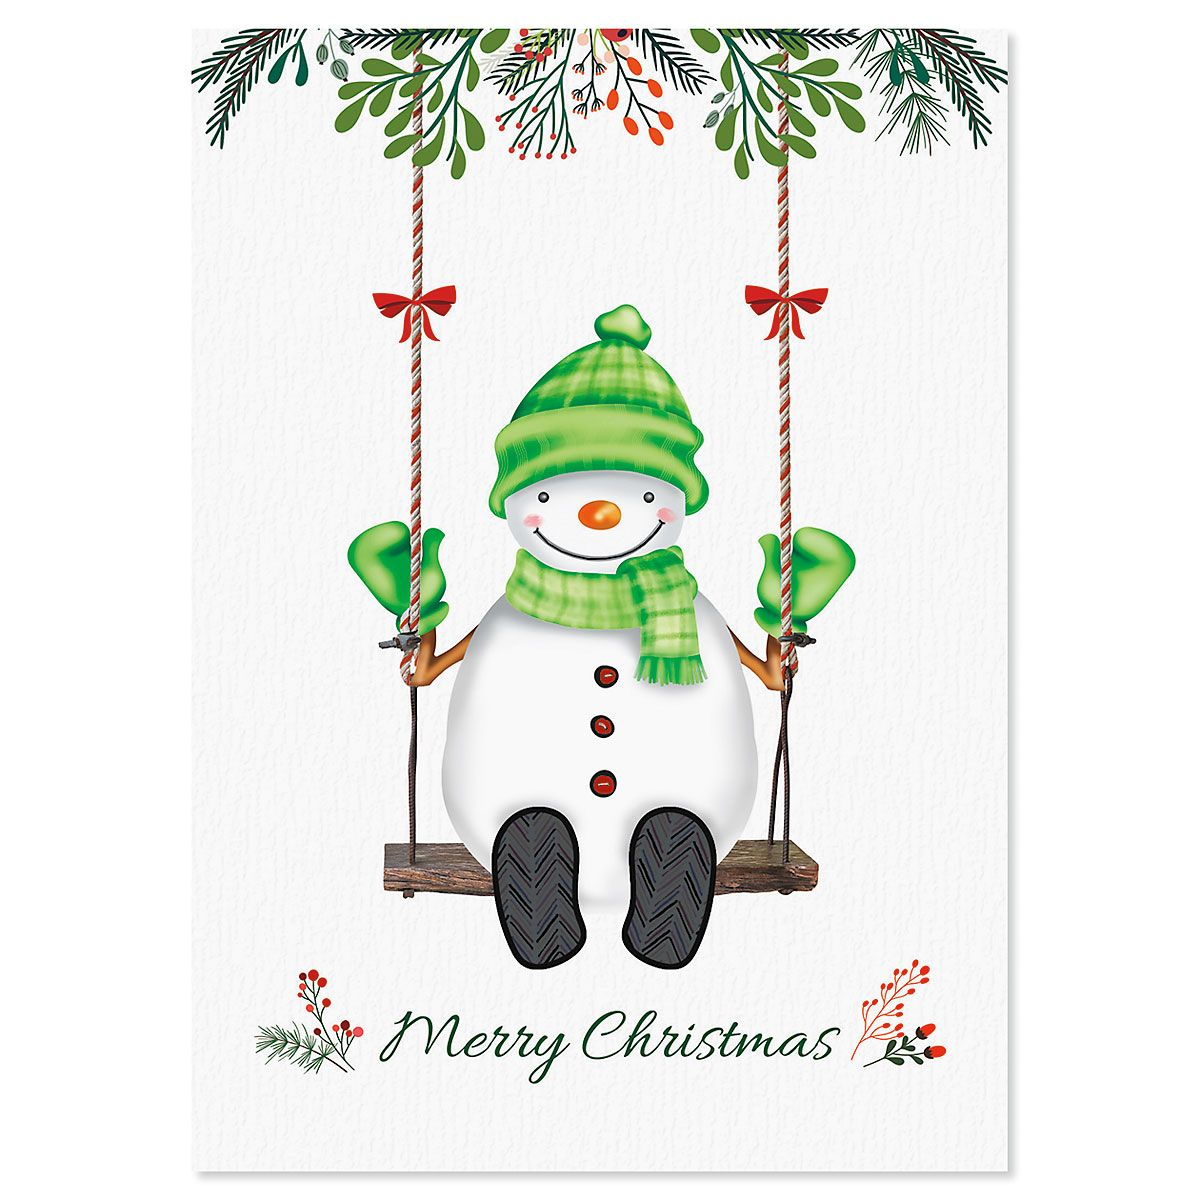 Swinging Snowman Christmas Cards